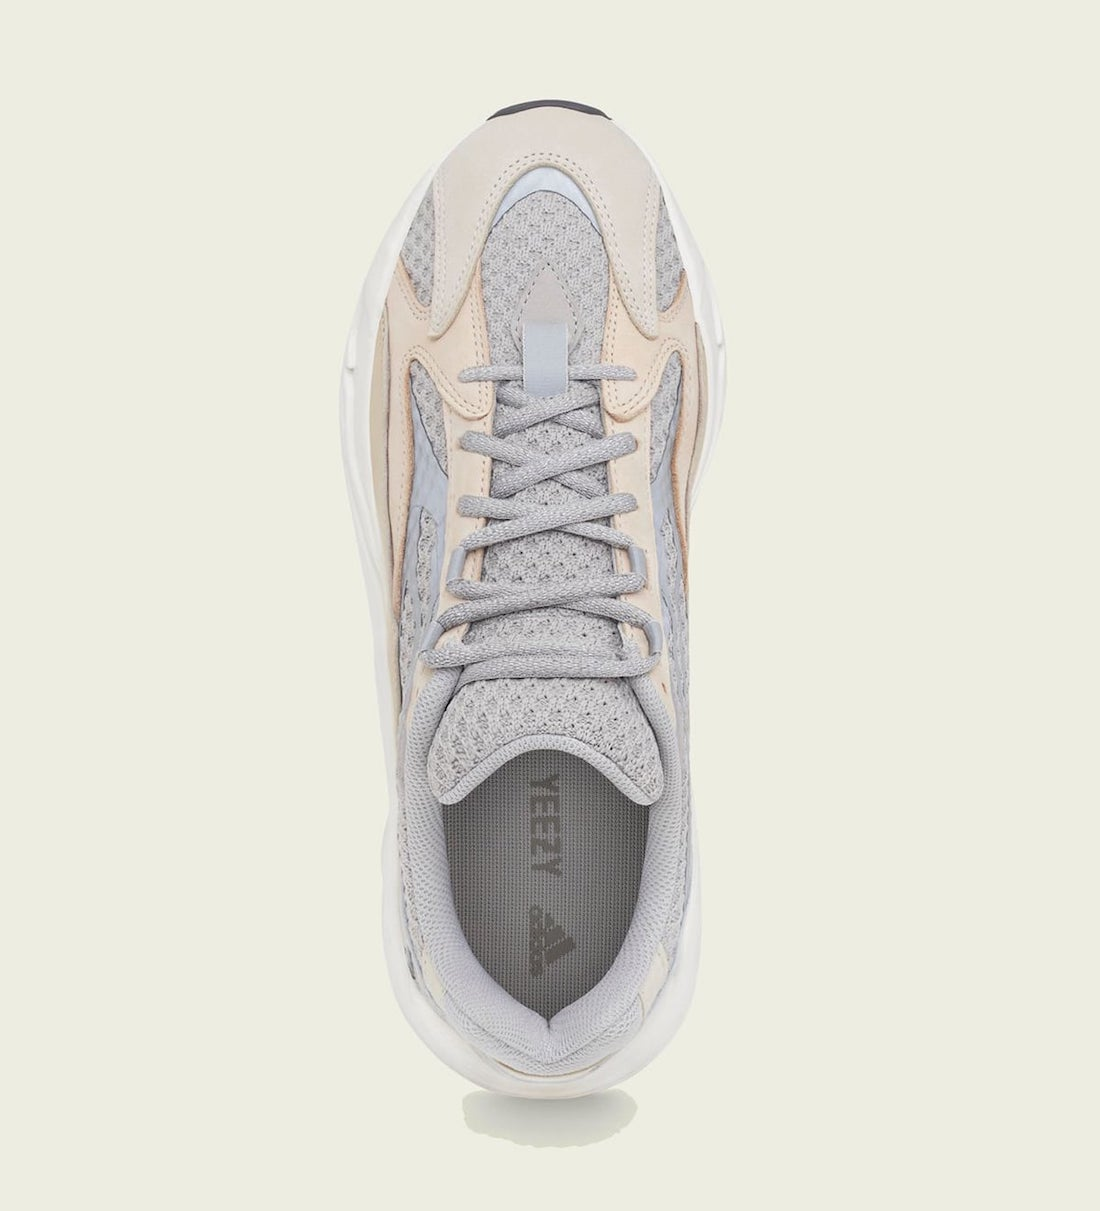 adidas Yeezy Boost 700 V2 Cream GY7924 Release Date